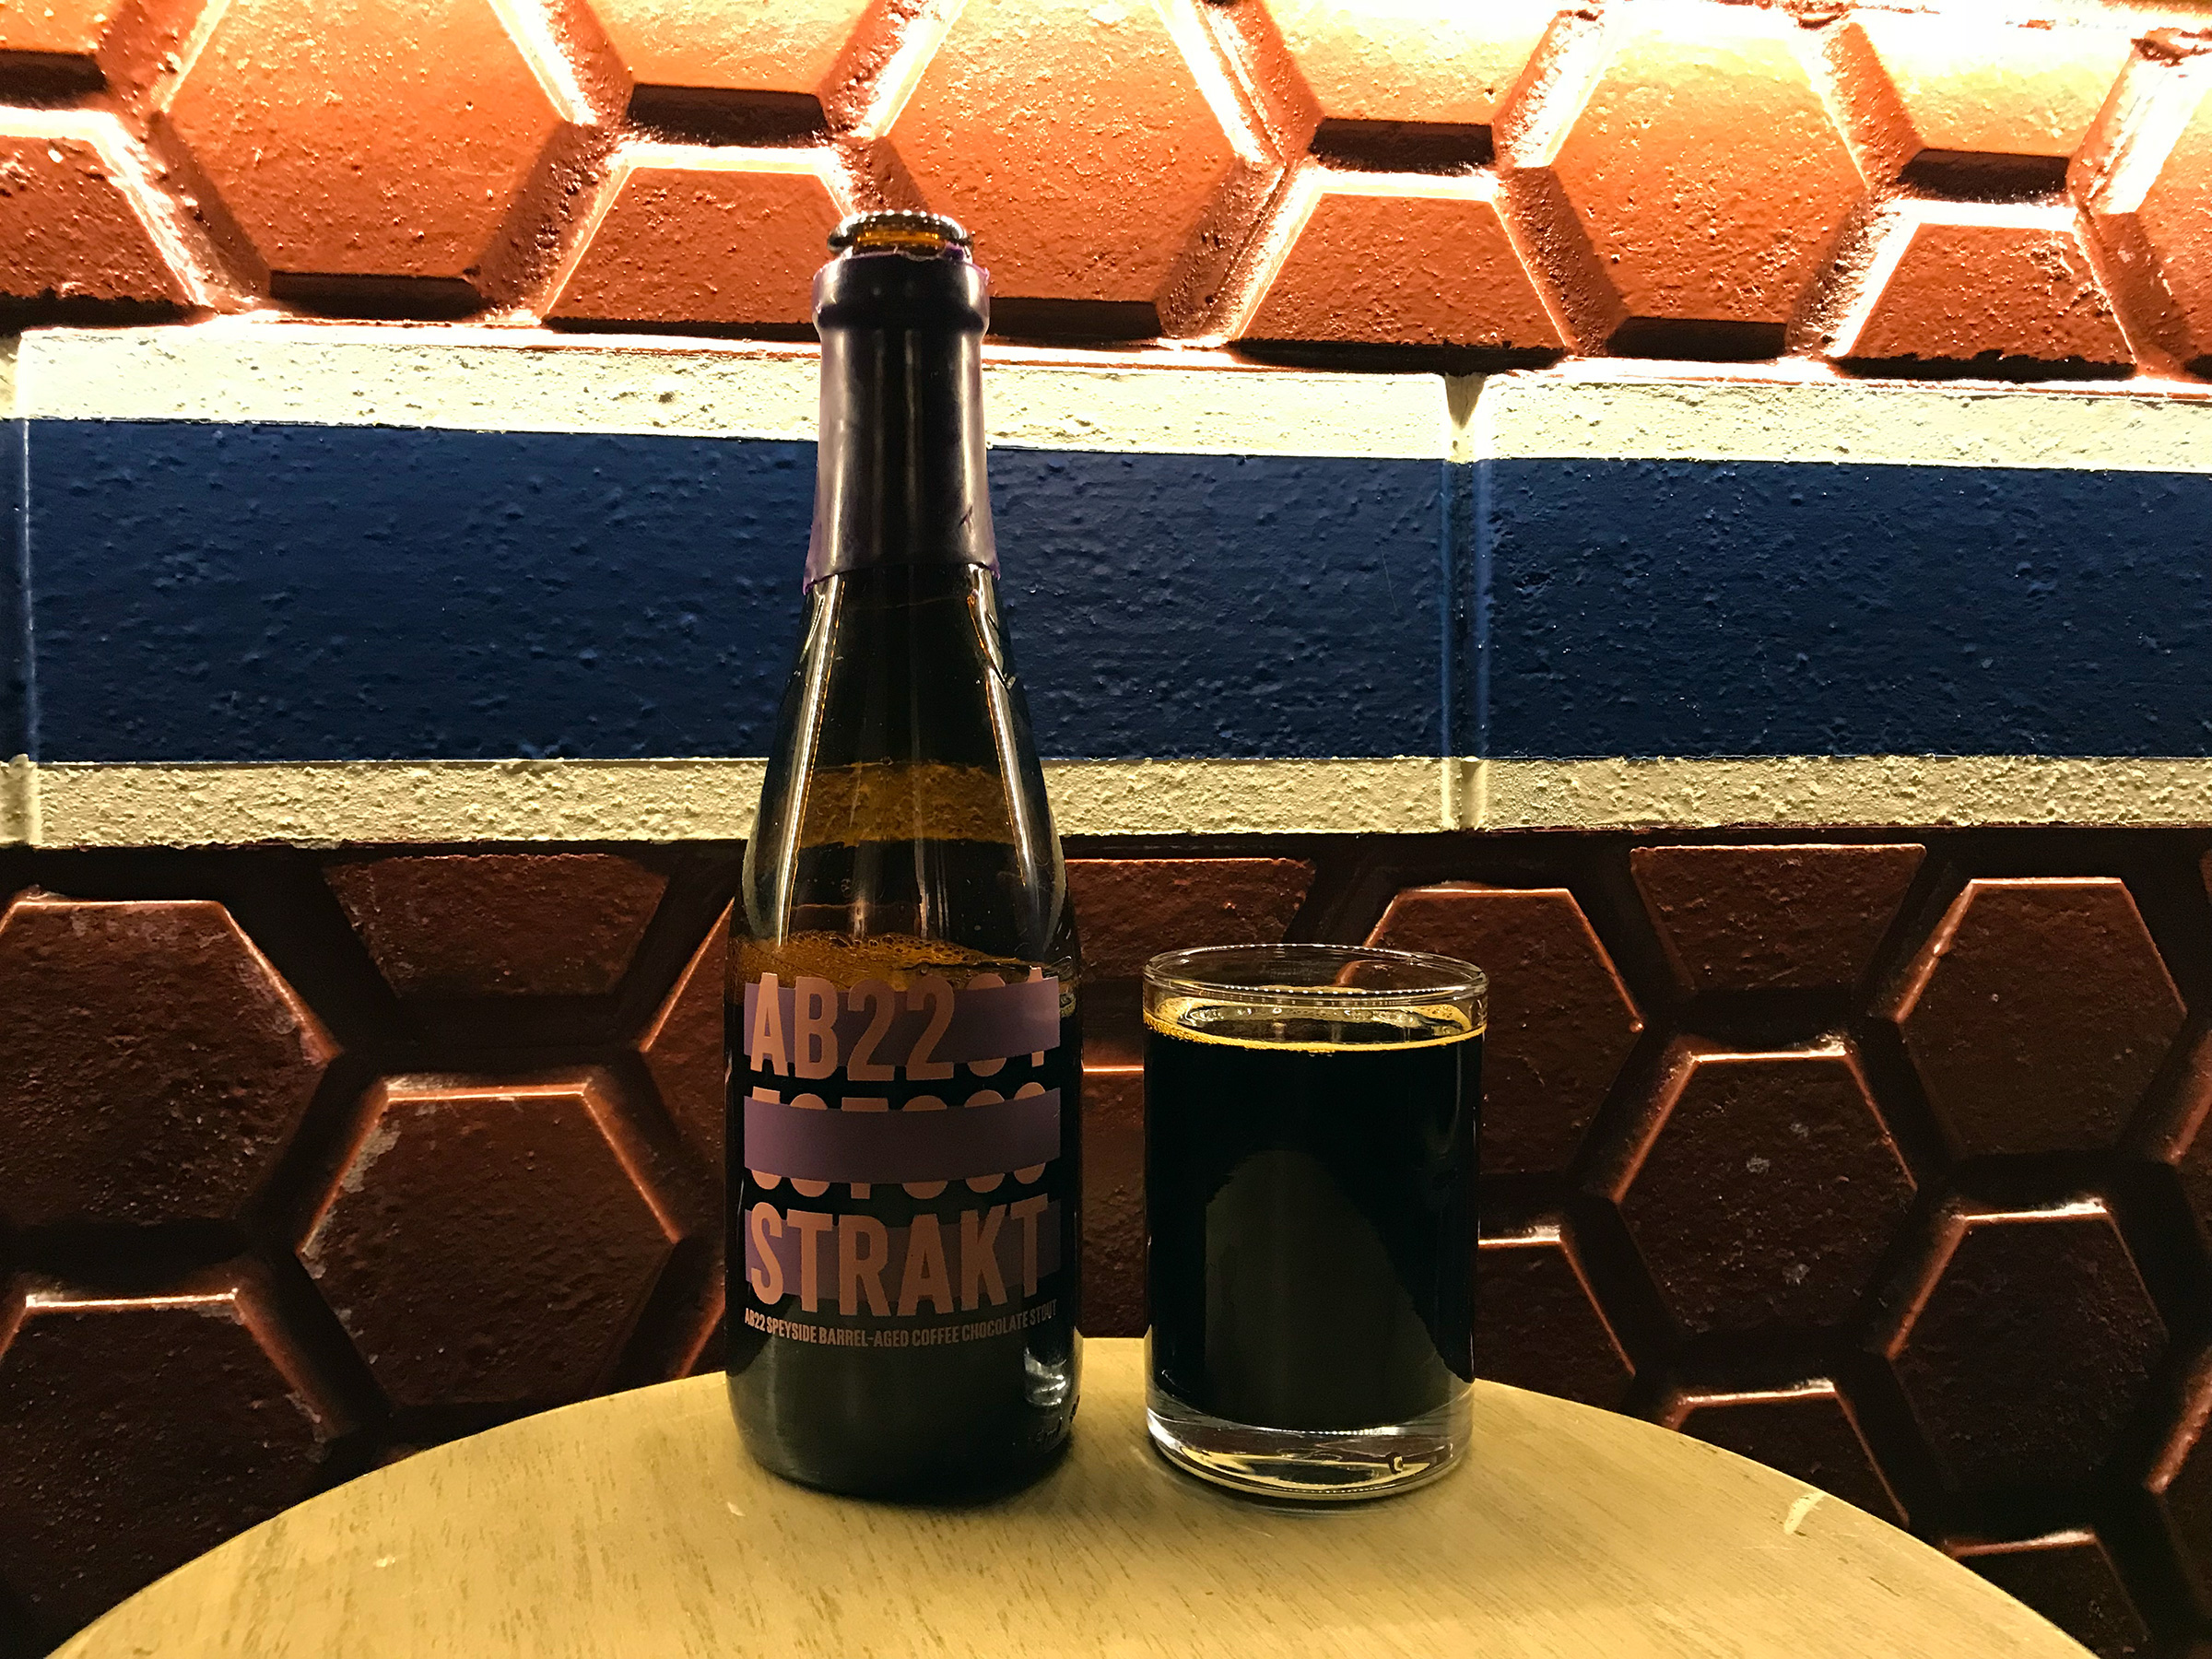 BrewDog AB:22 by Jets Like Taxis / Hopsmash